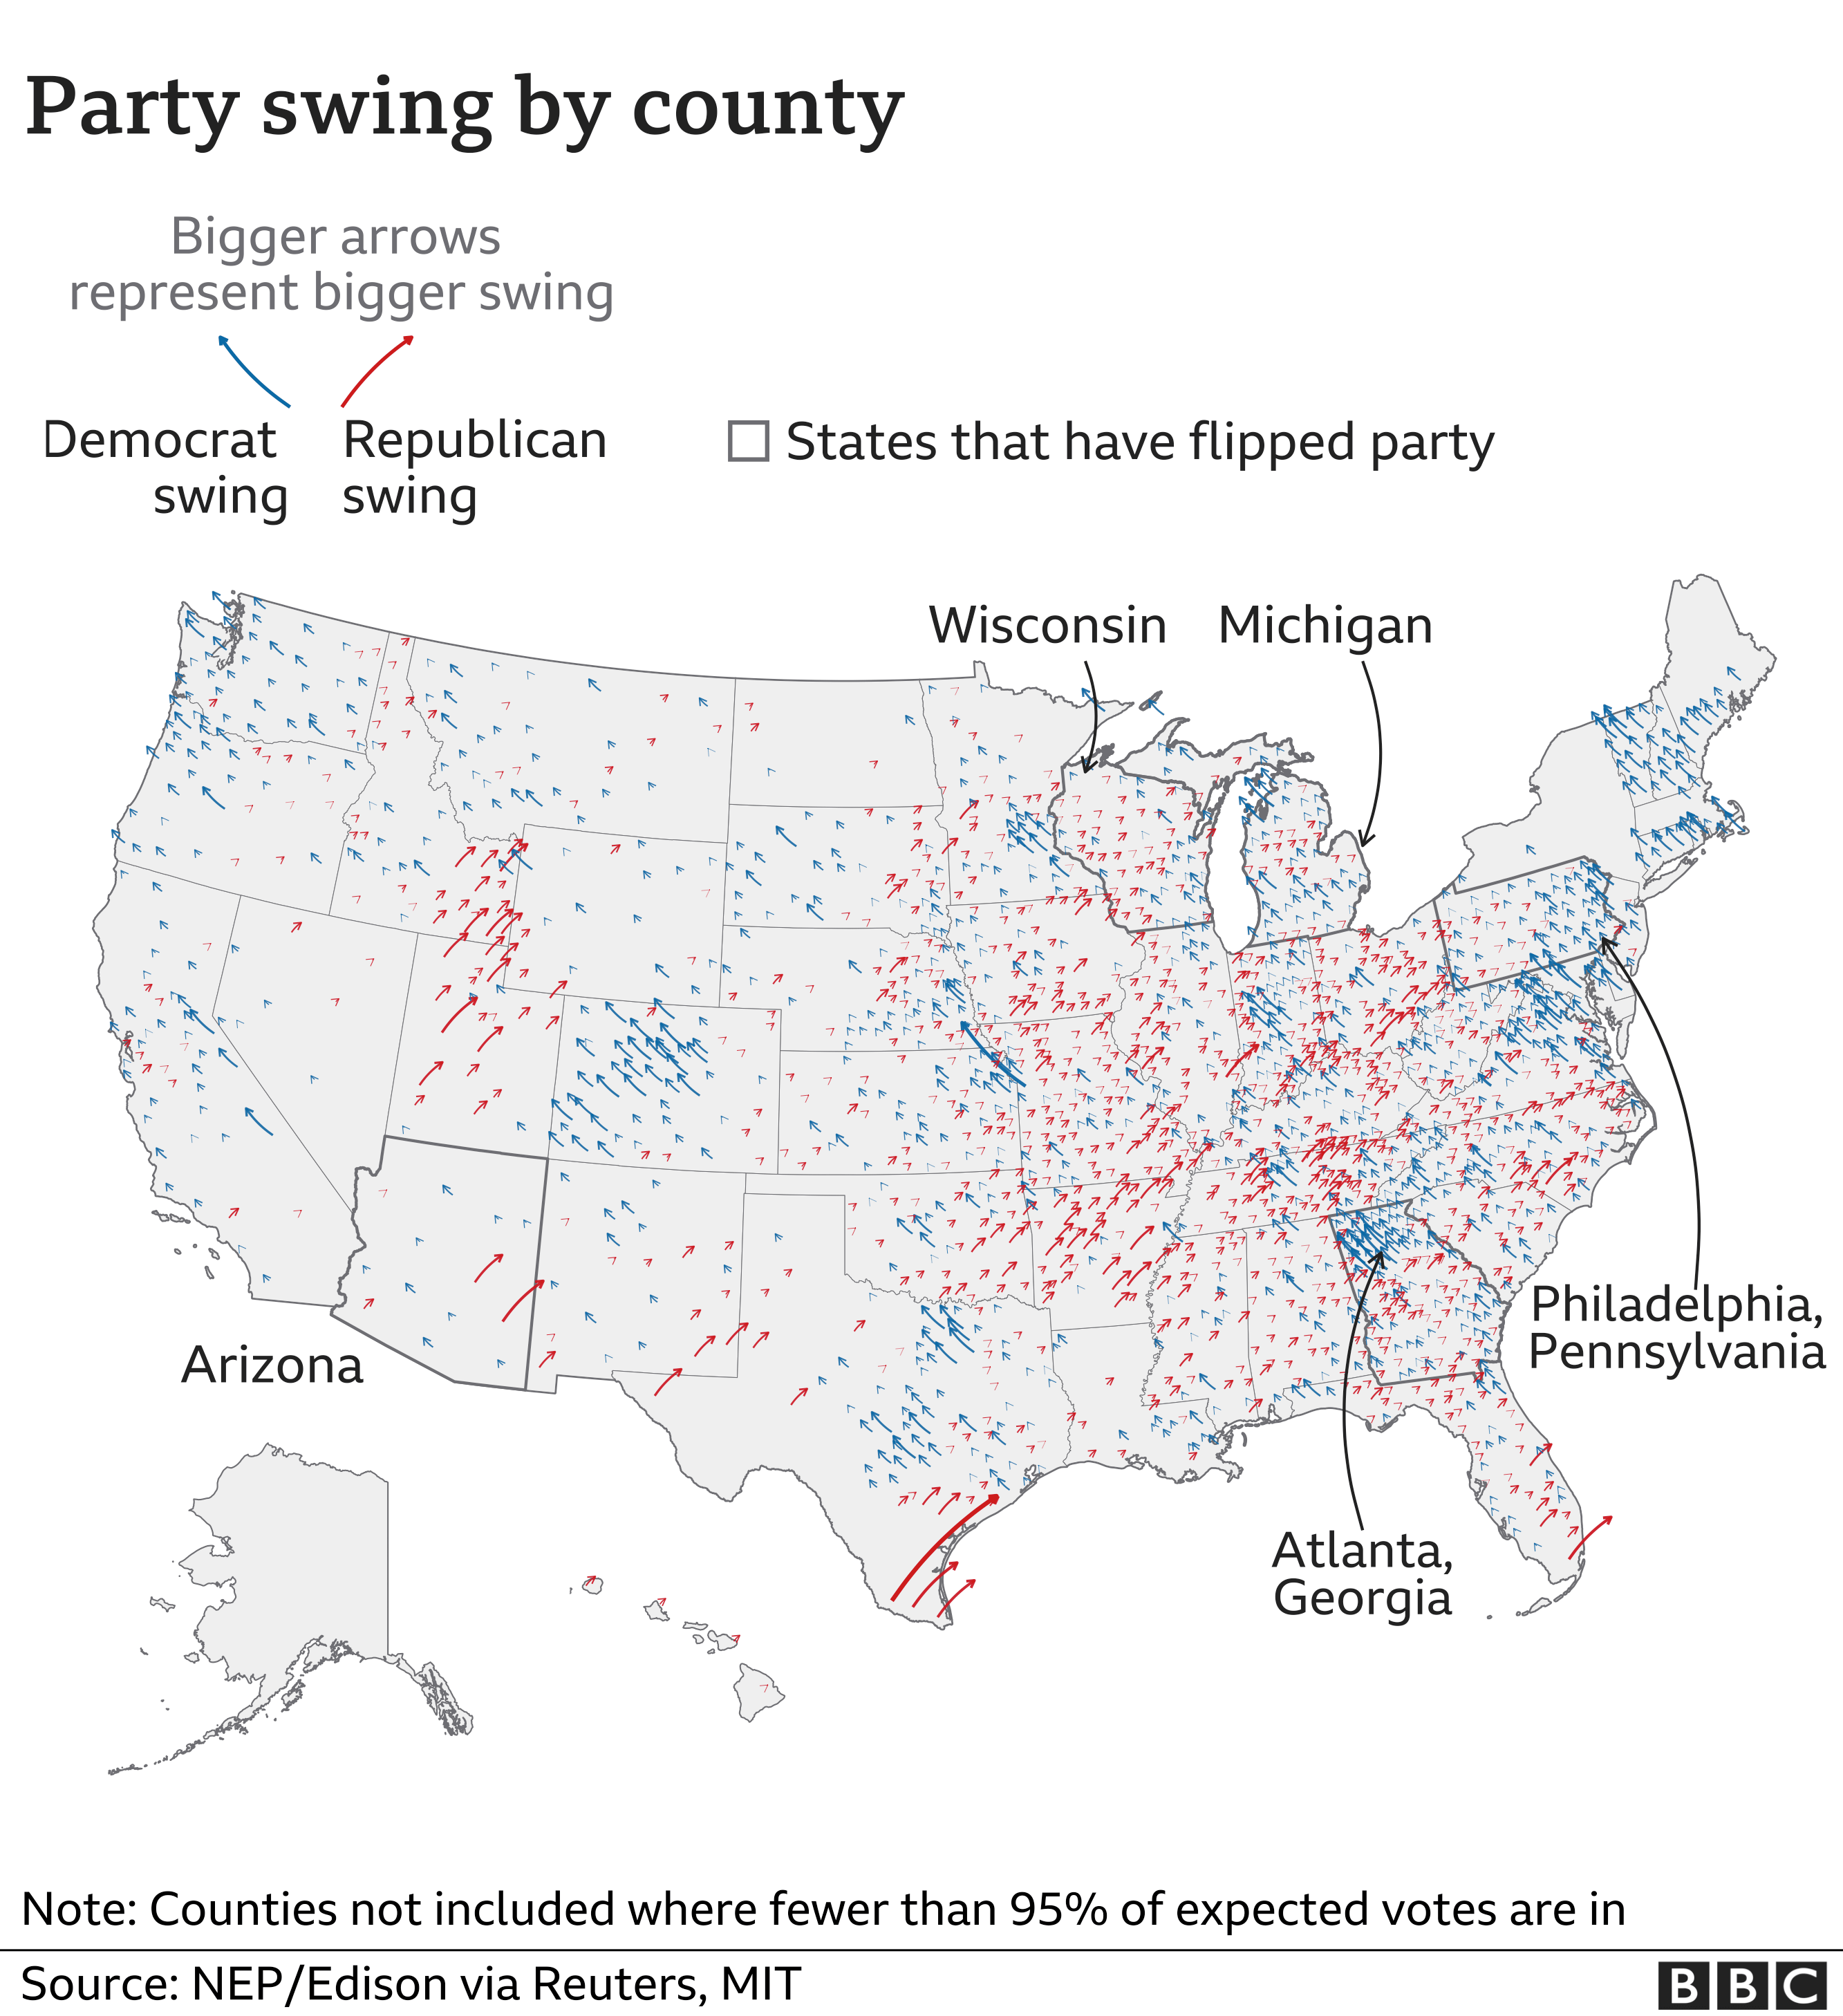 Share change by county - Trump increased his lead in states where he already had a lot of support